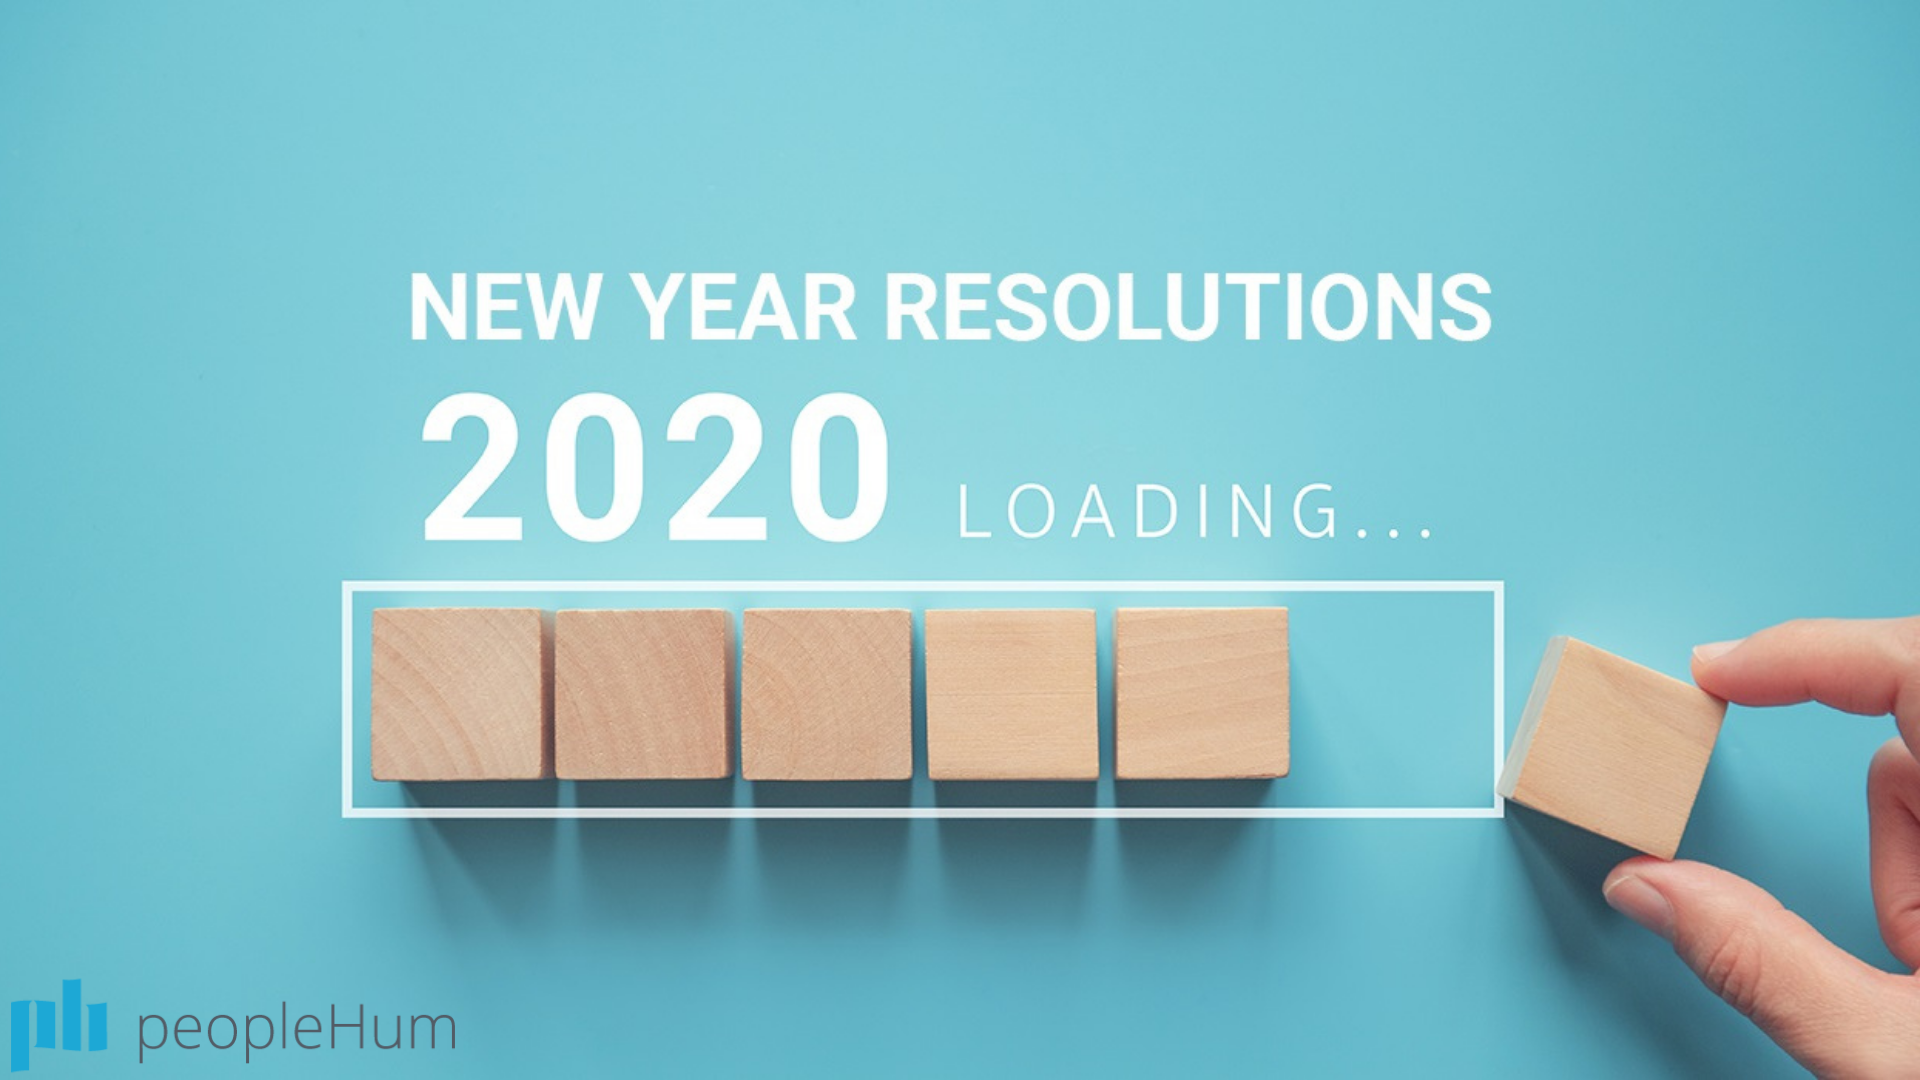 New year resolutions every business leader should make